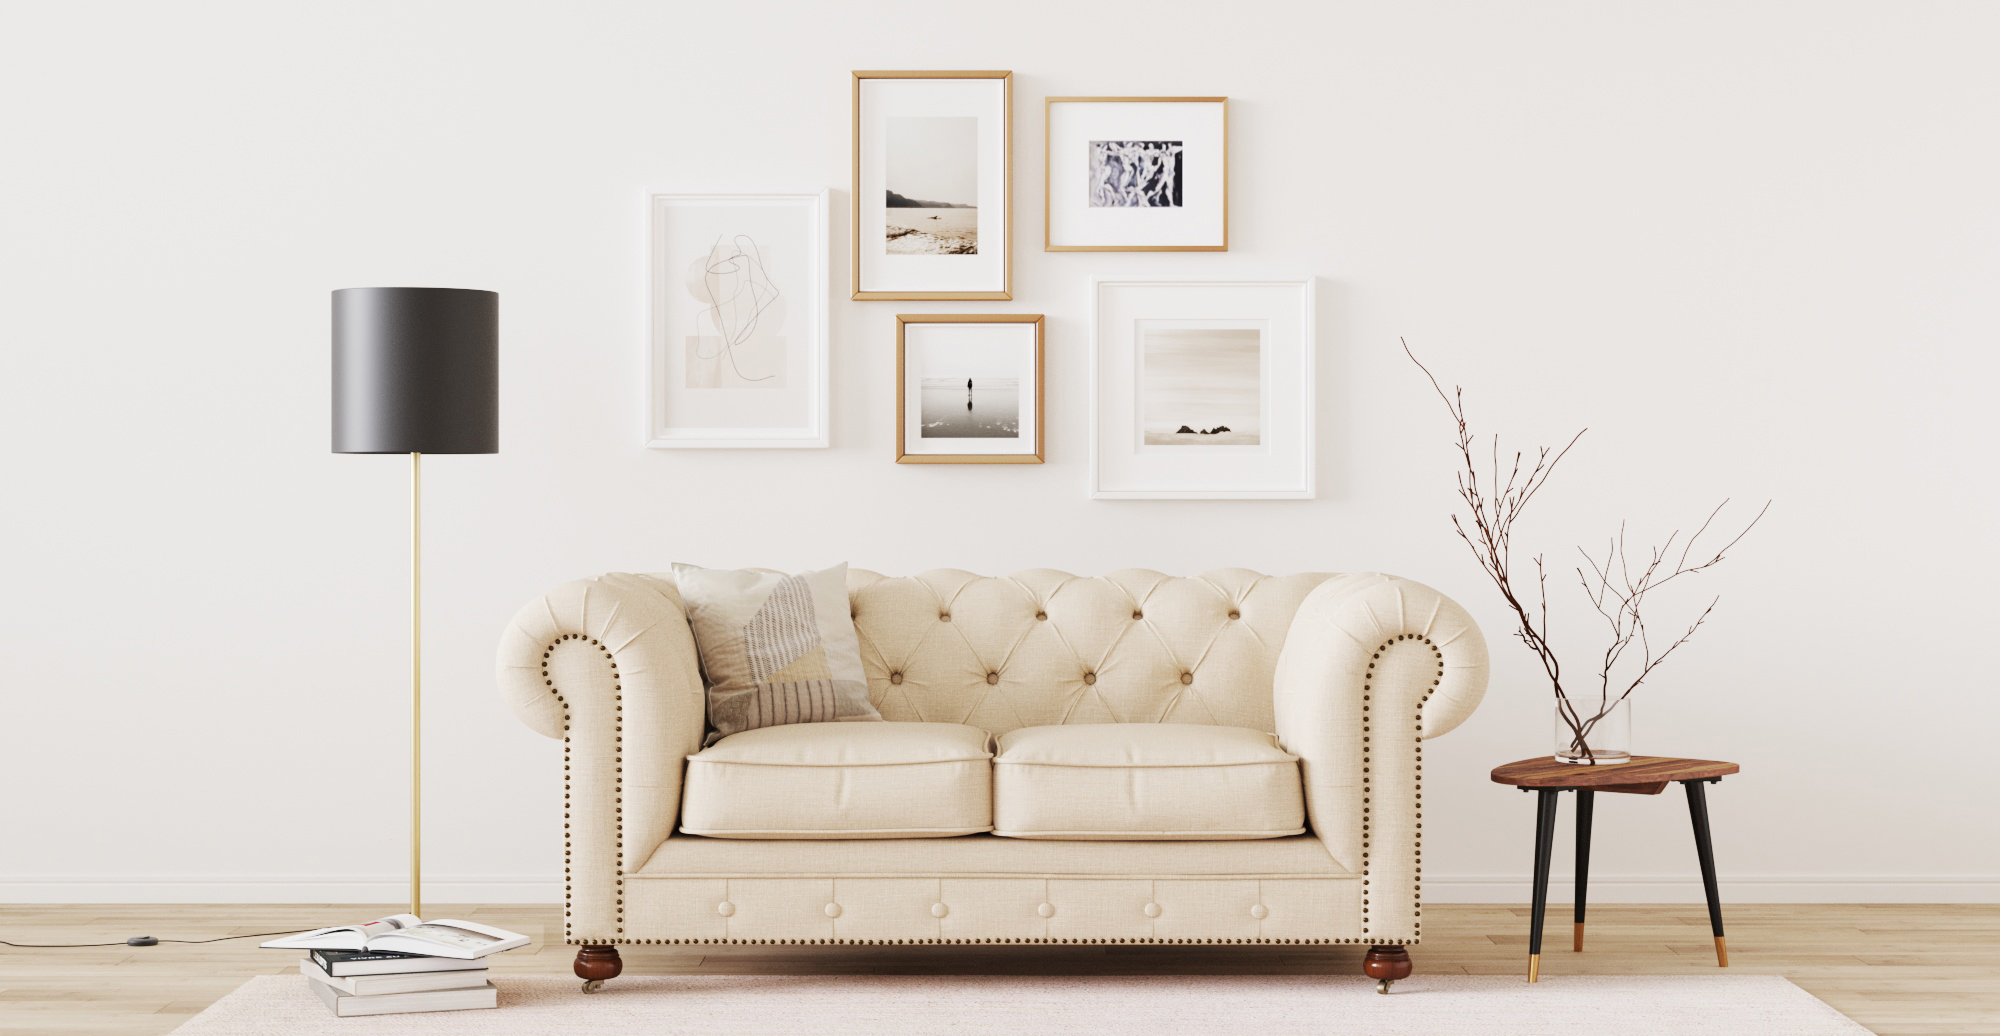 Brosa Camden Chesterfield 2 Seater Sofa styled in classic traditional living room